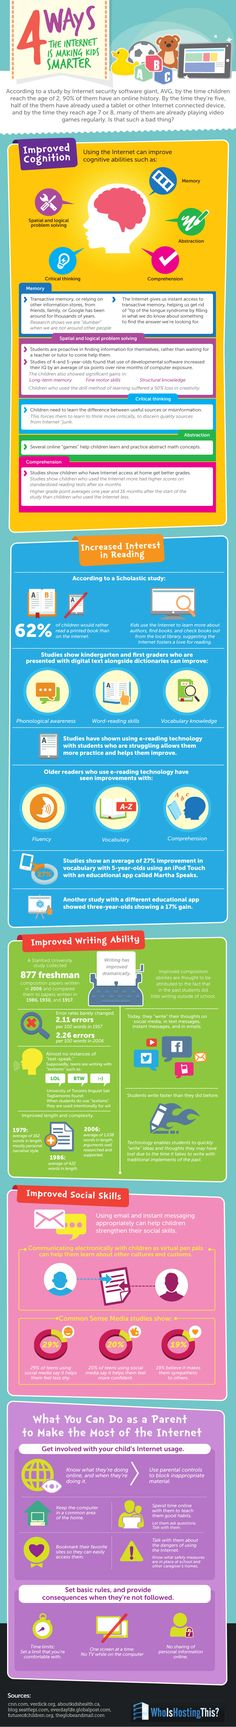 Infographic: 4 Ways the Internet is Making Kids Smarter